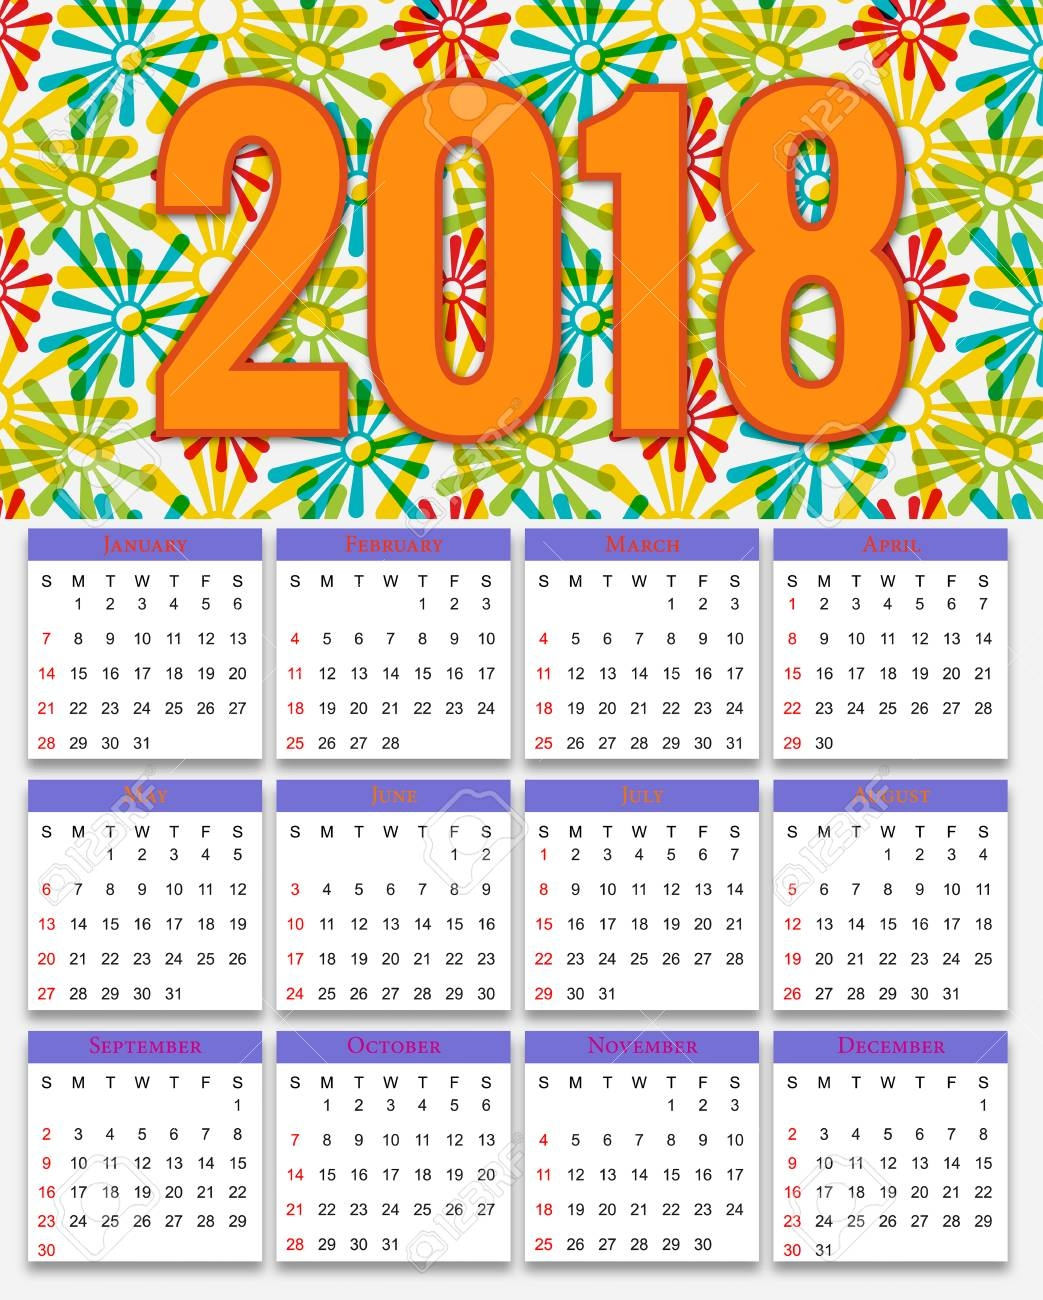 12 months calendar design 2018 printable and editable royalty free 2018 12 Month Calendar Image erdferdf